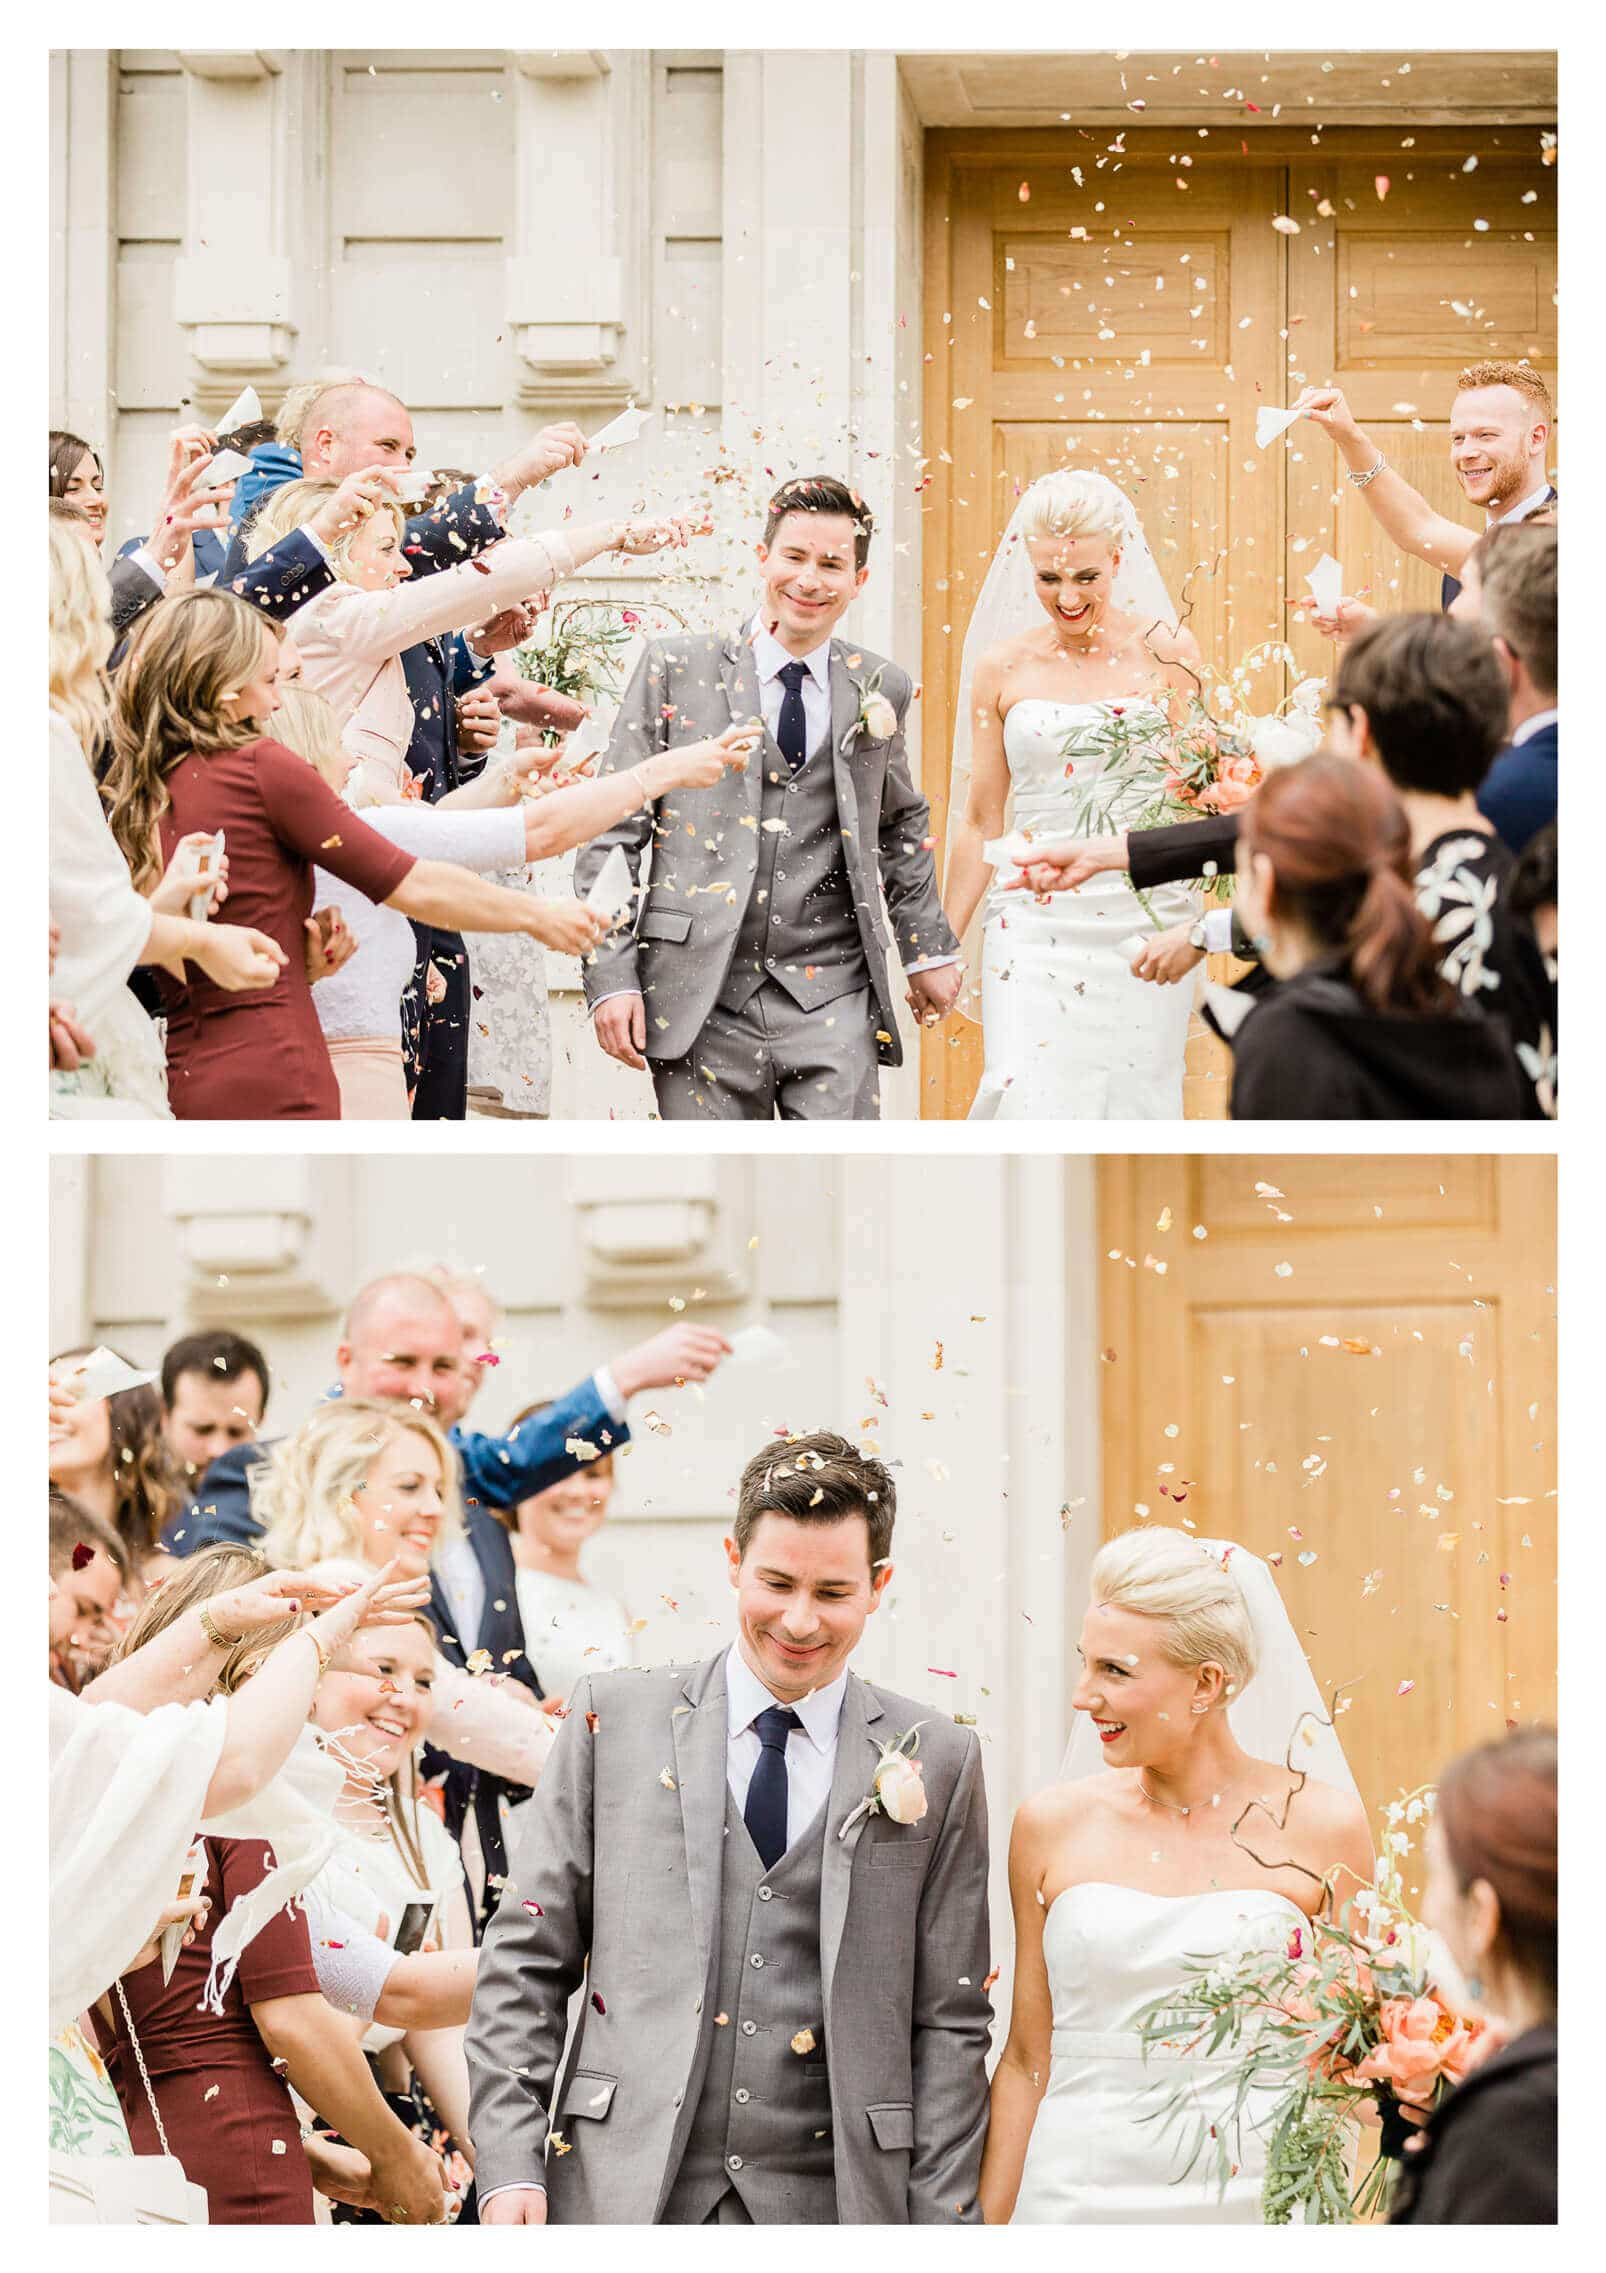 Hackney Town Hall rose petal confetti tunnel | London wedding photographer